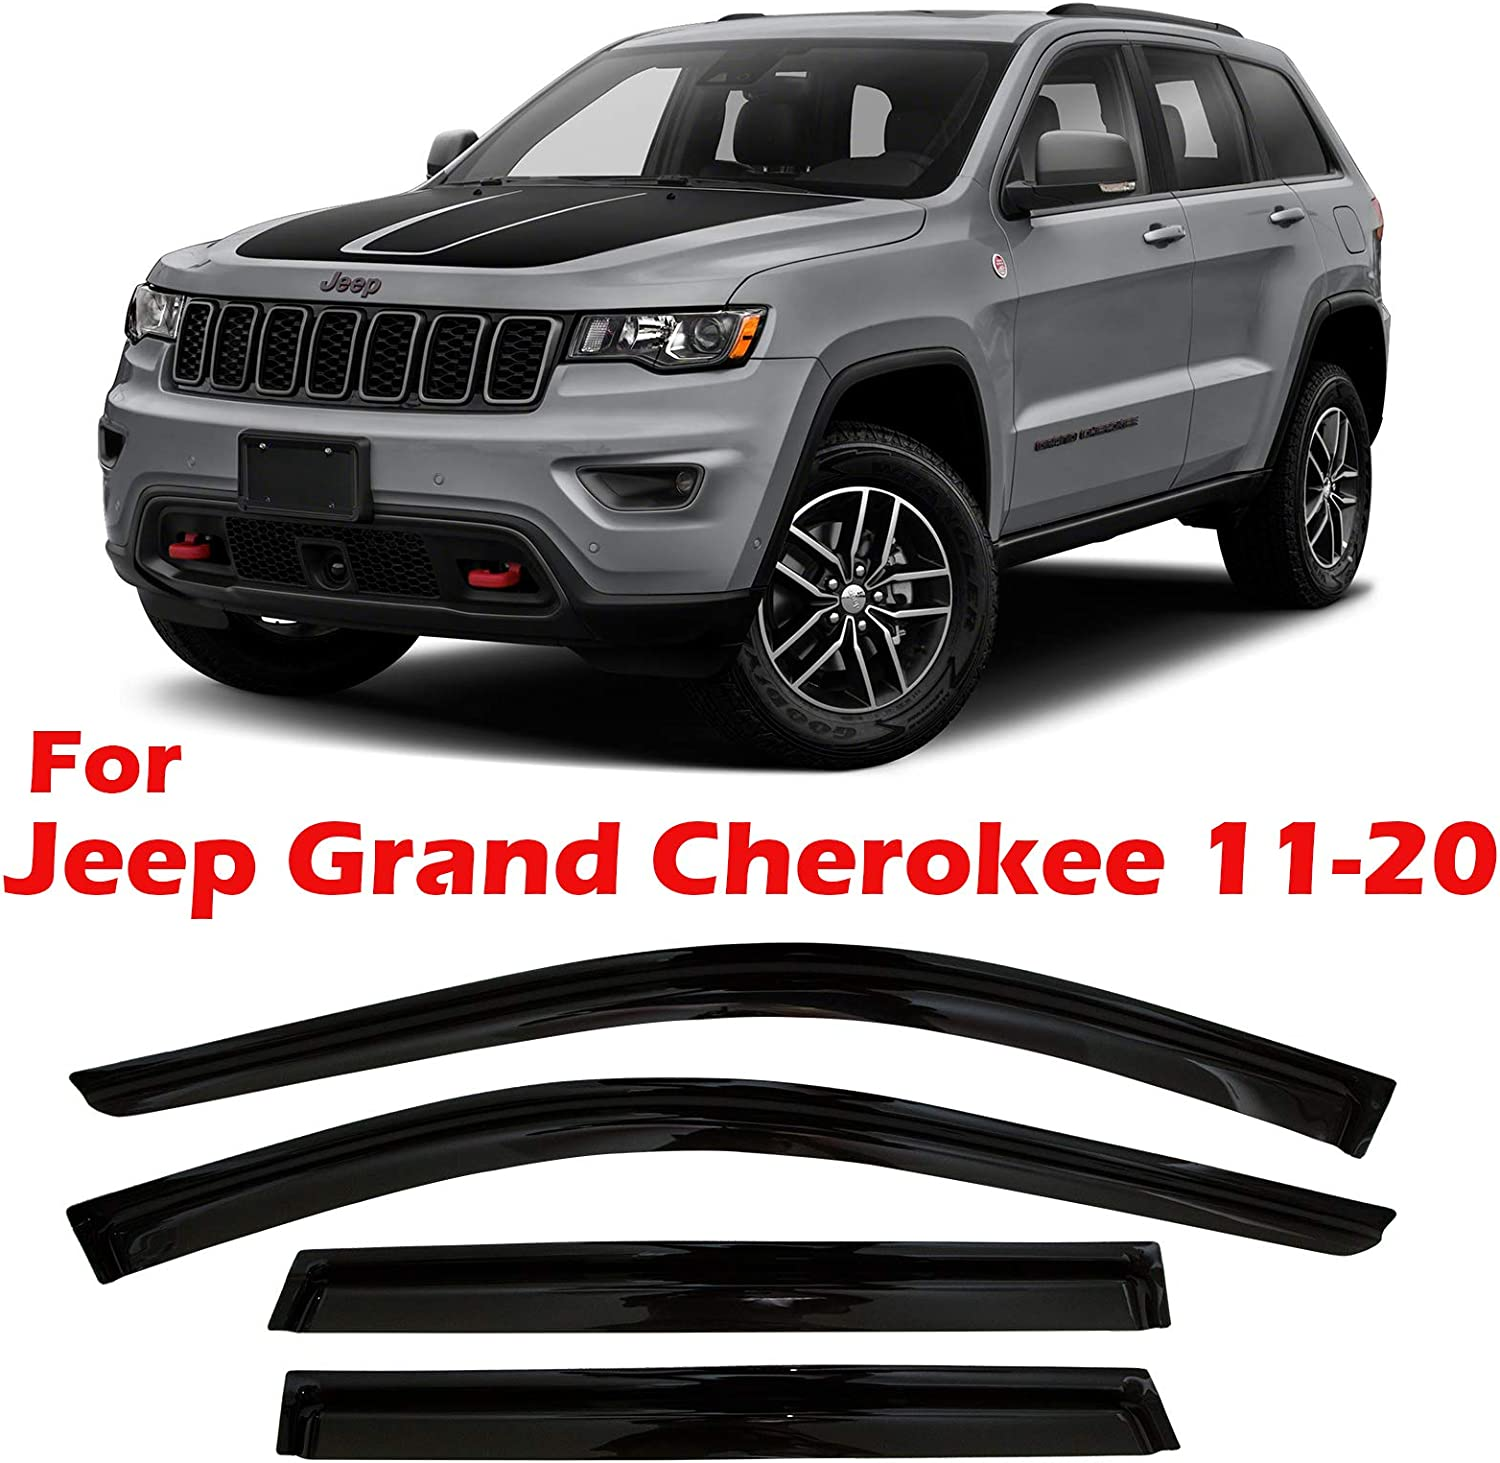 Window Deflectors Original Tape-on Vent Deflector CLIM ART Rain Guards Suitable for Jeep Grand Cherokee 11-20 4 pcs Vent Window Visor - 410032 Rain Guard Dark Smoke Accessories